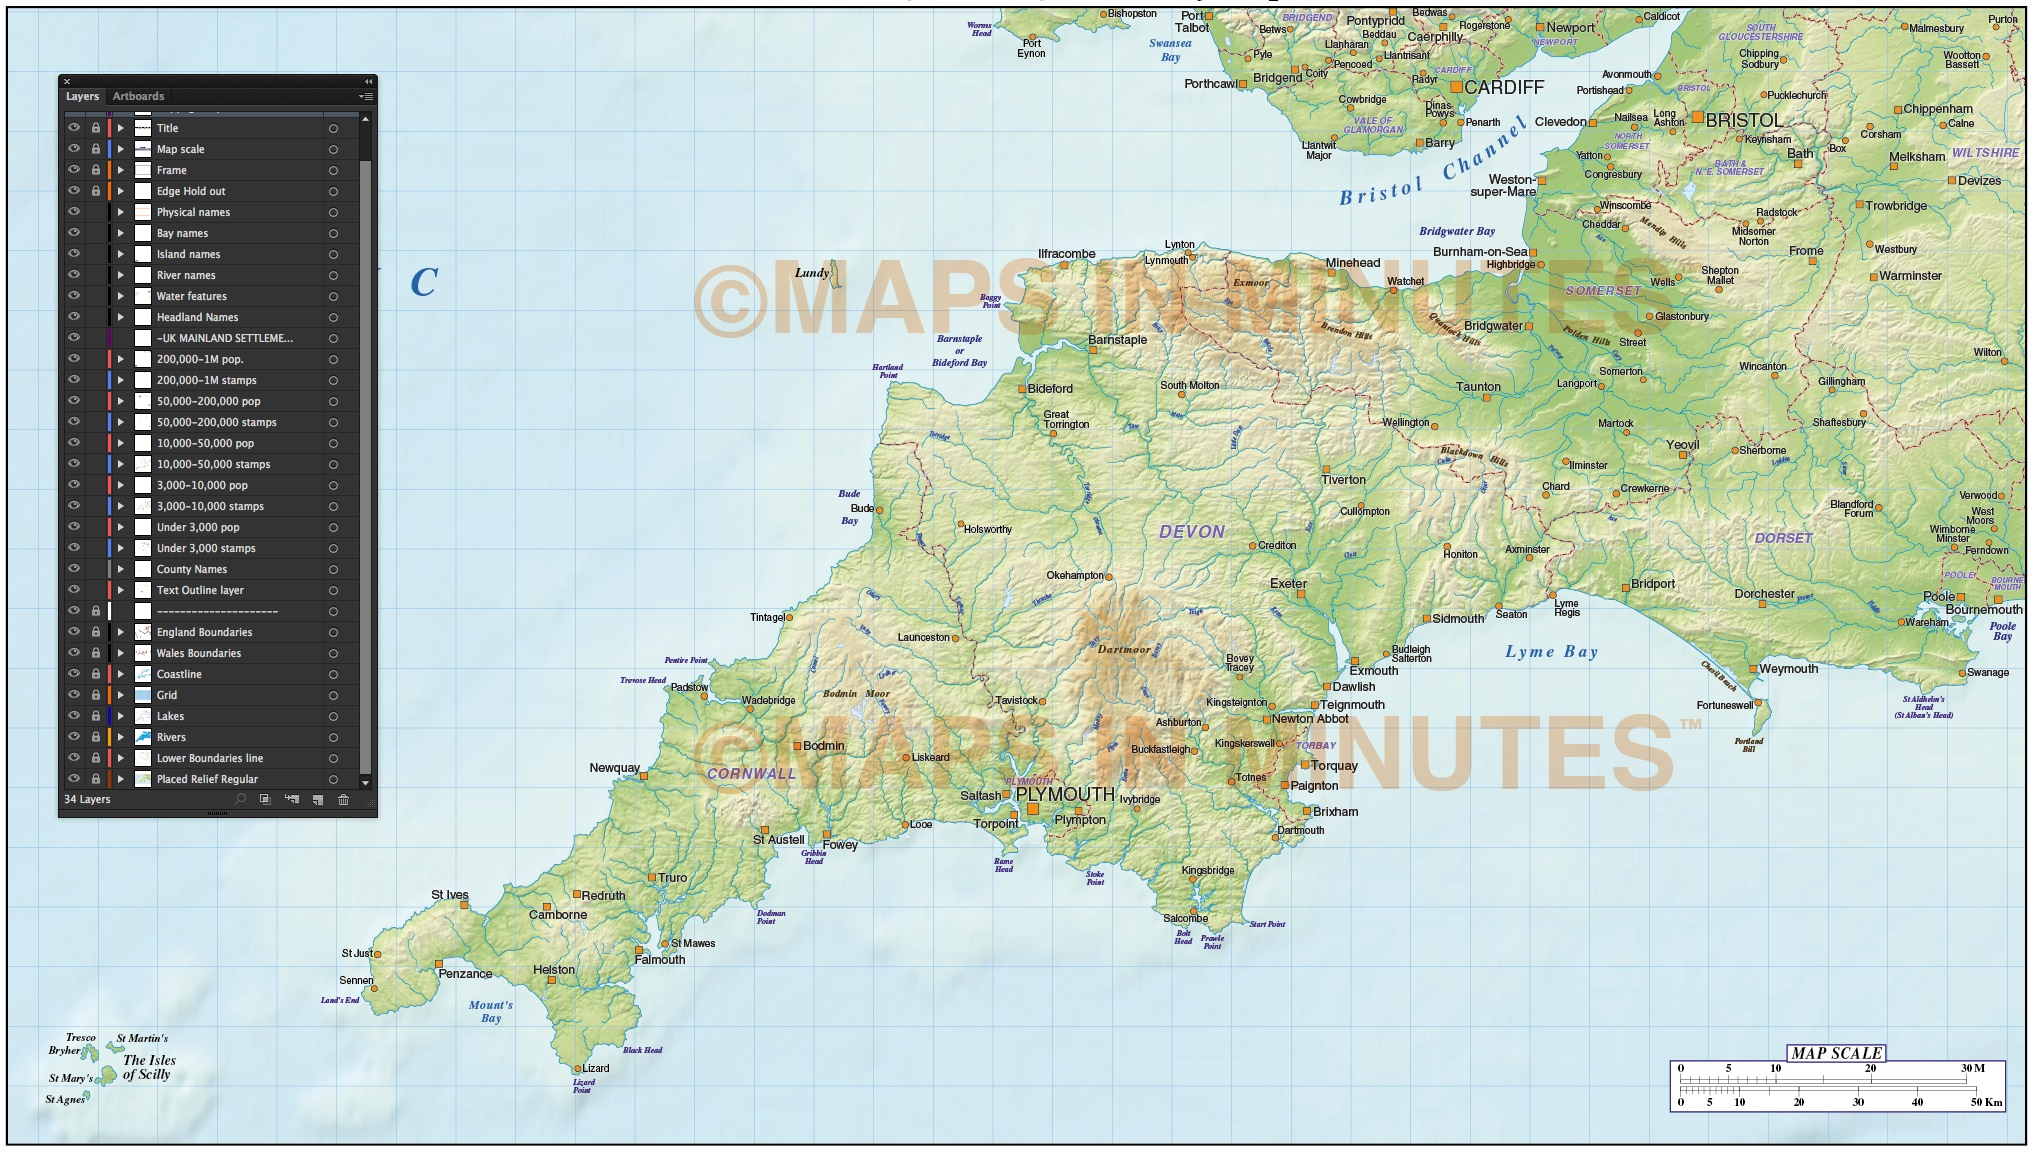 South West England County Map With Regular Relief